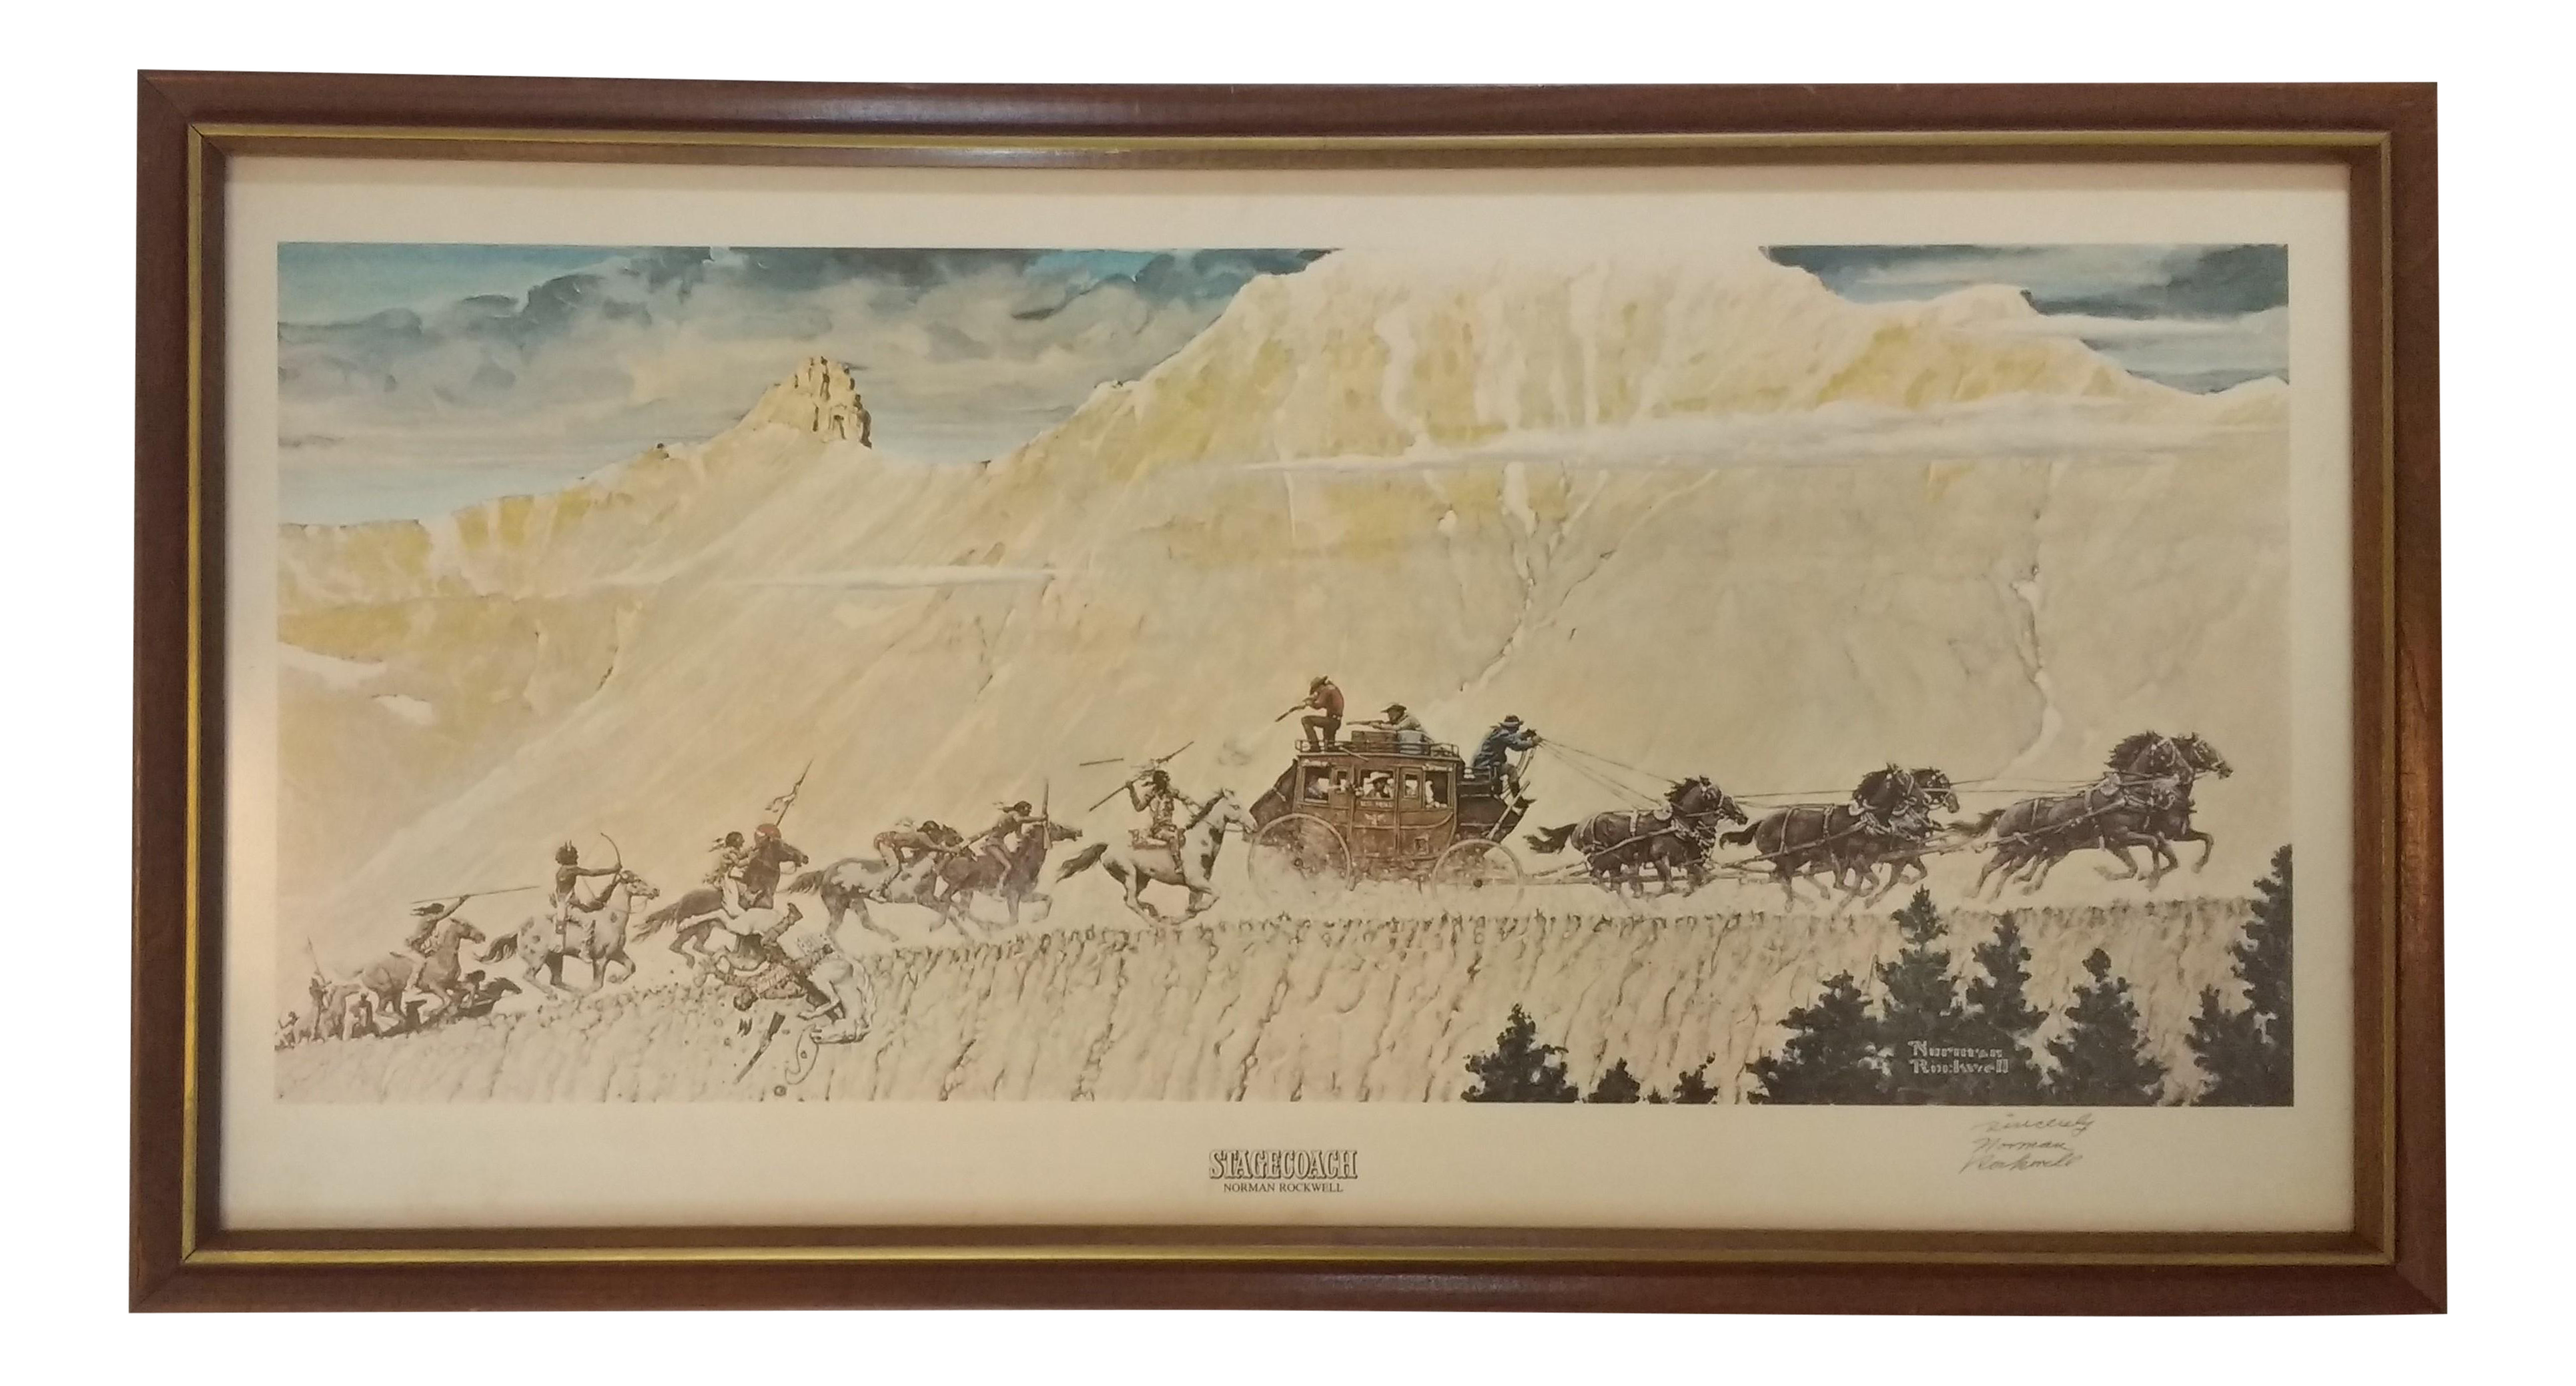 1966 Norman Rockwell Stagecoach Signed Print Chairish